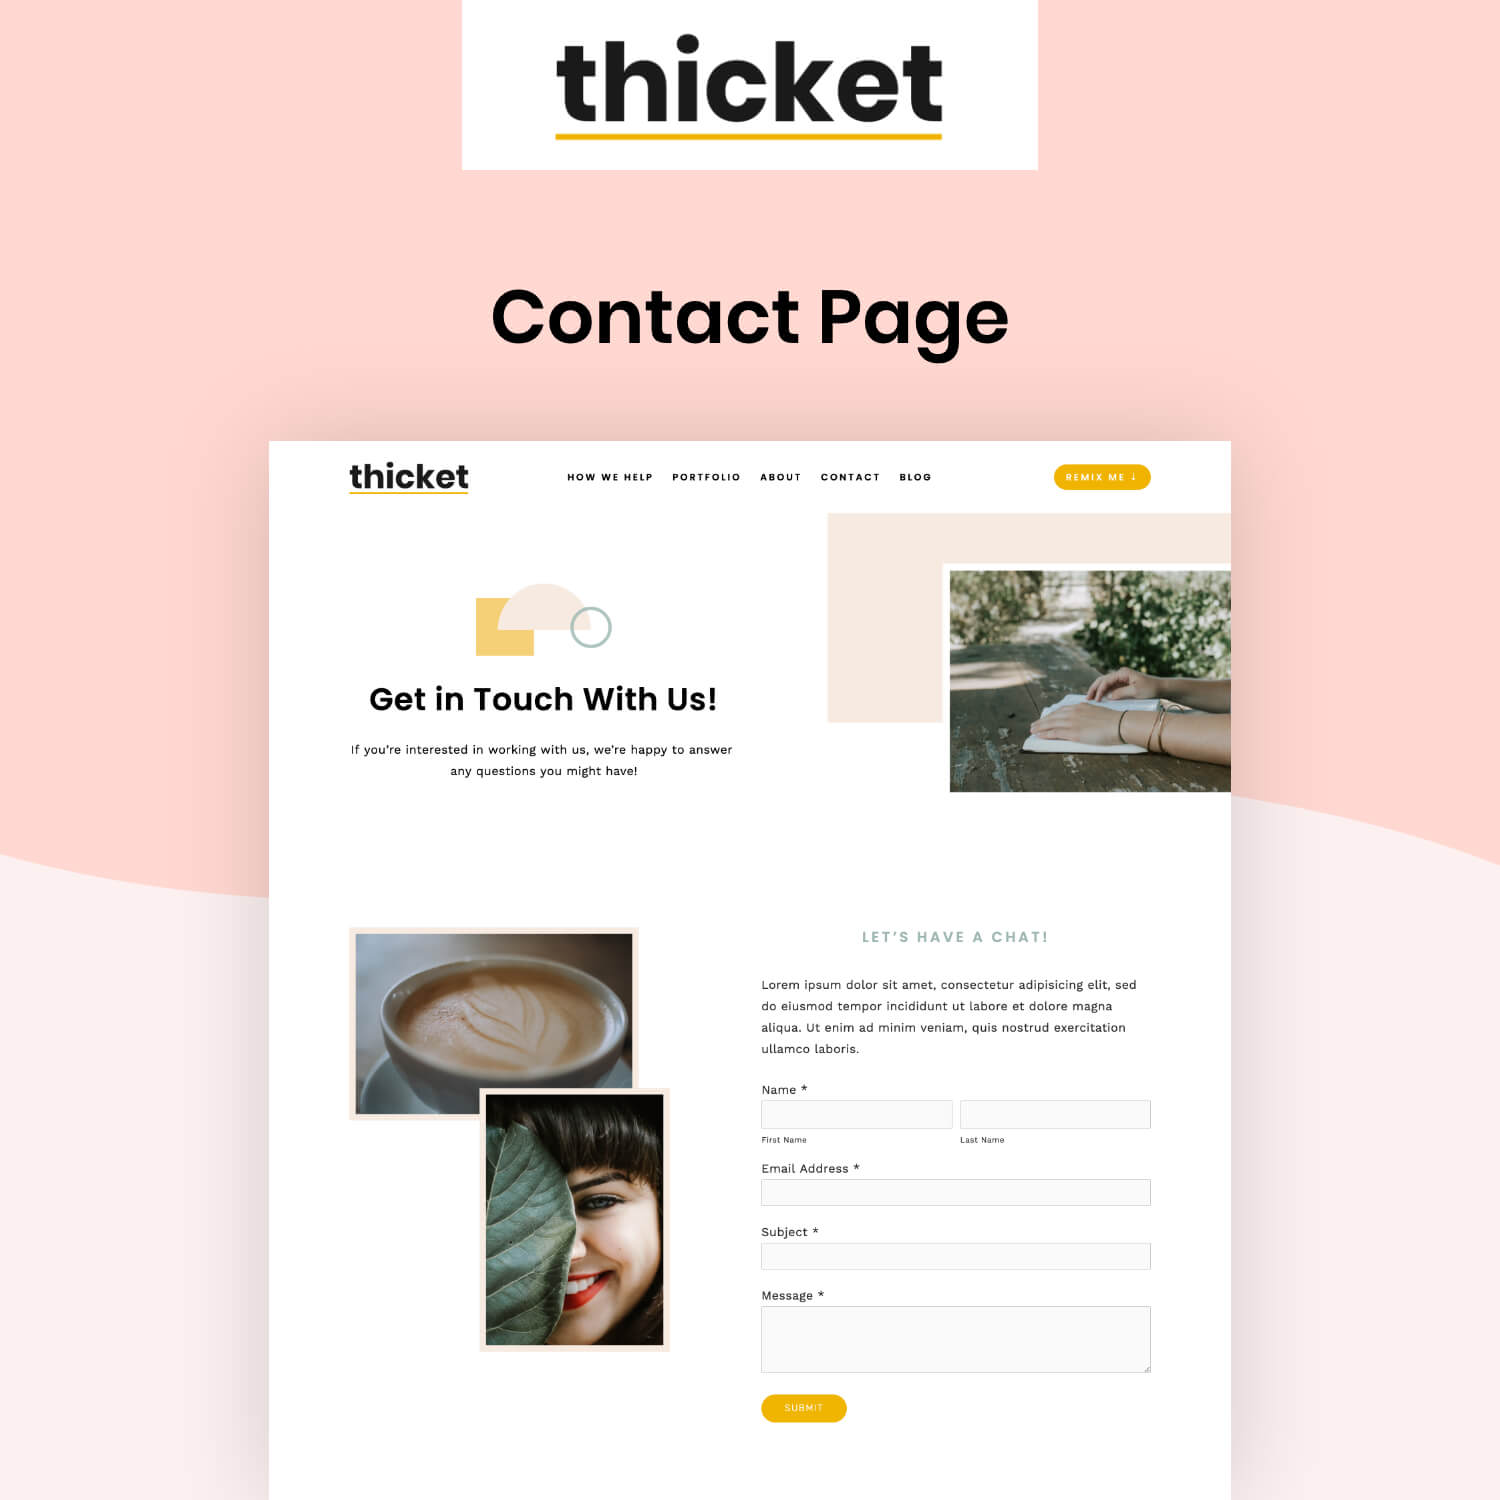 Thicket Contact Page